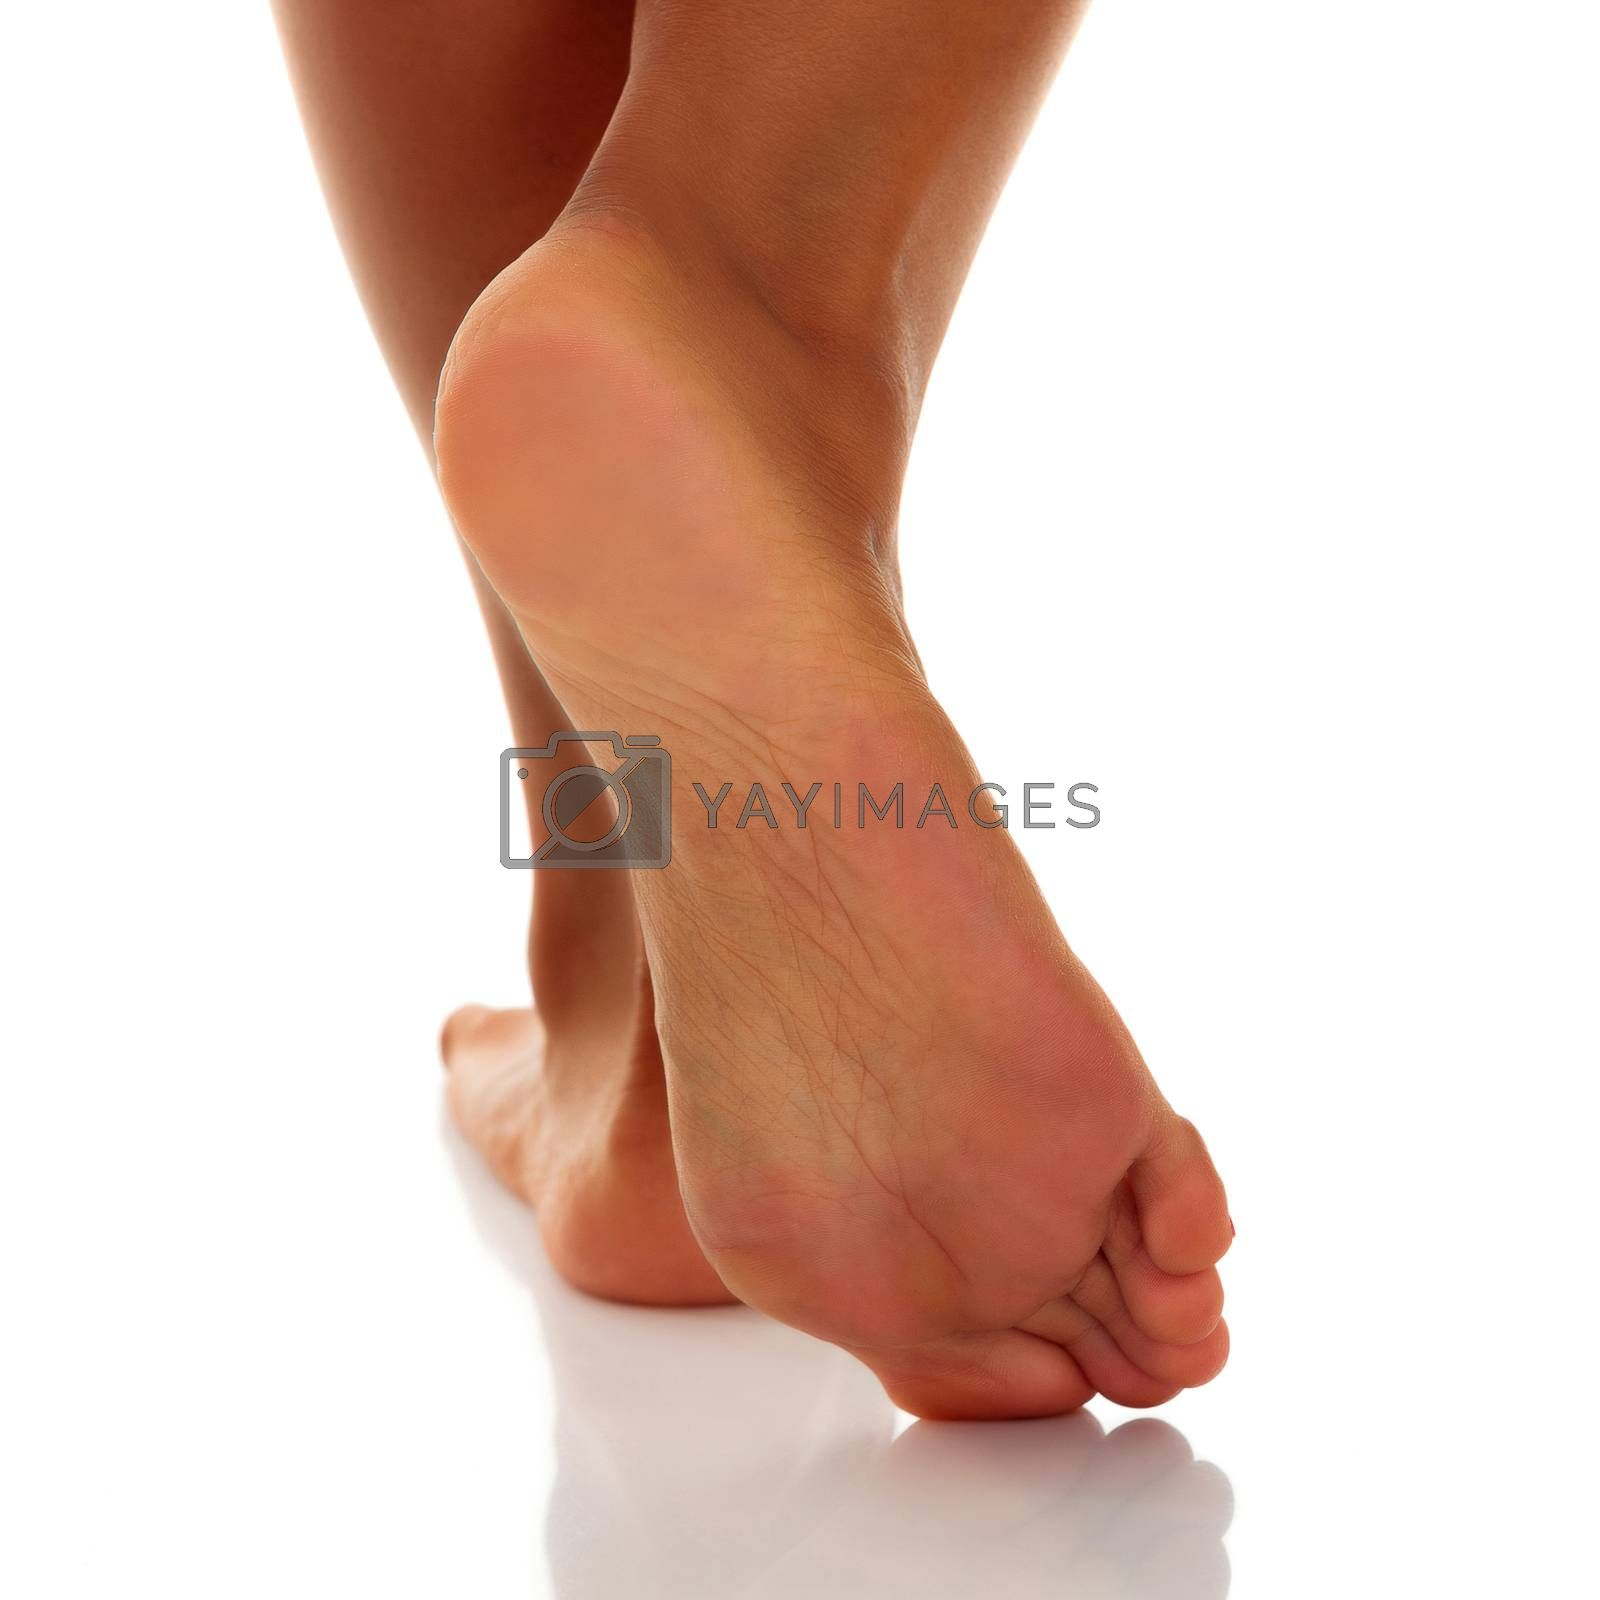 Closeup shot of tanned female feet, isolated on white background